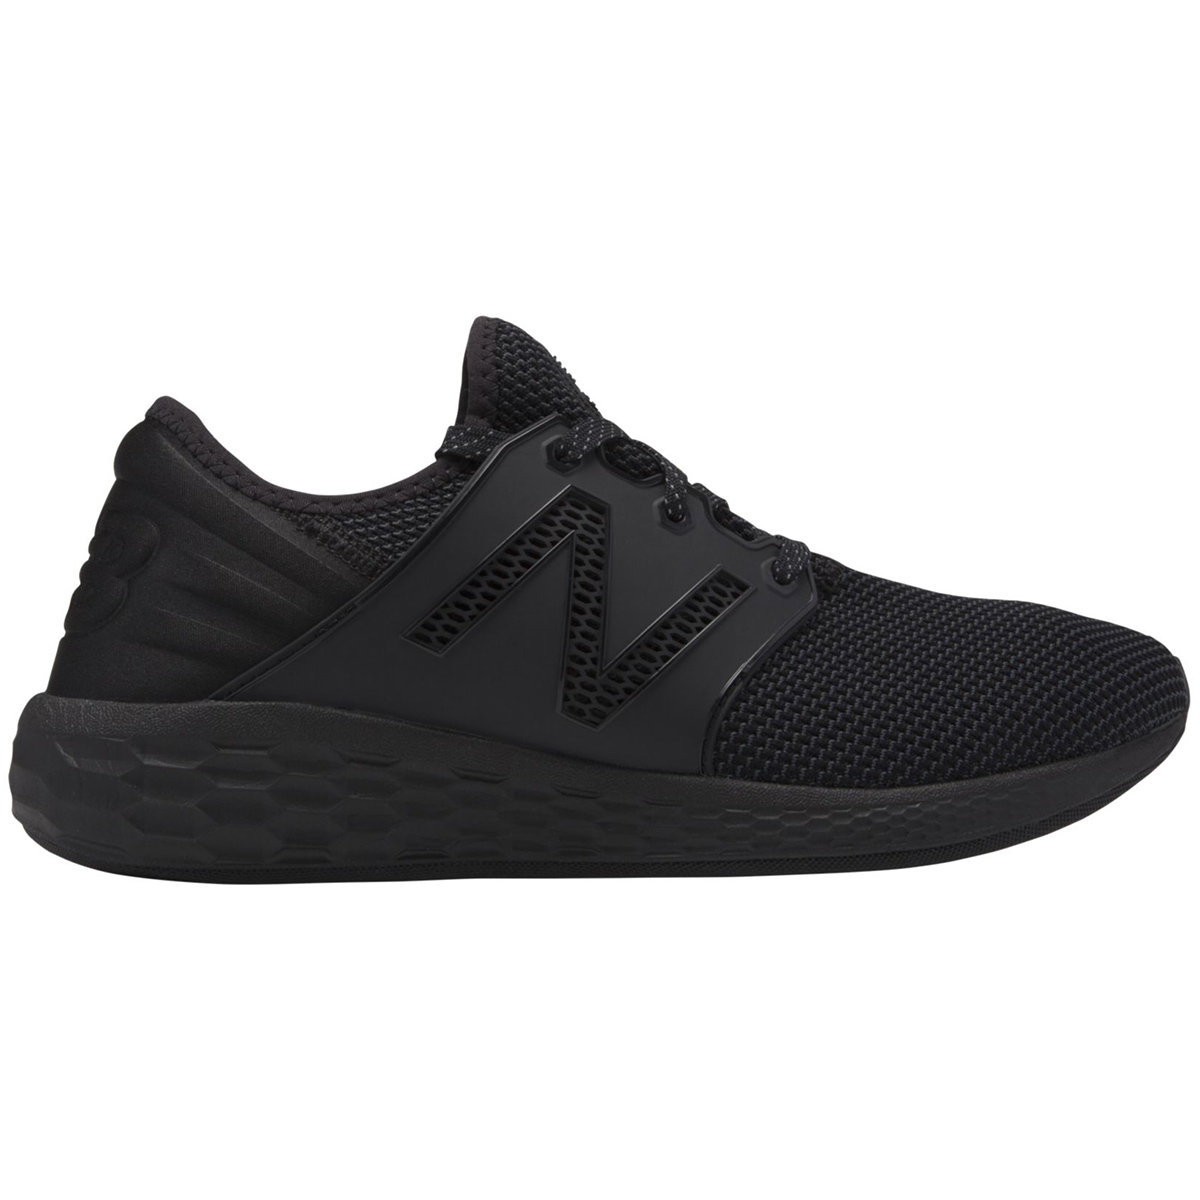 New Balance Men's Fresh Foam Cruz V2 Sport Running Shoes - Black, 10